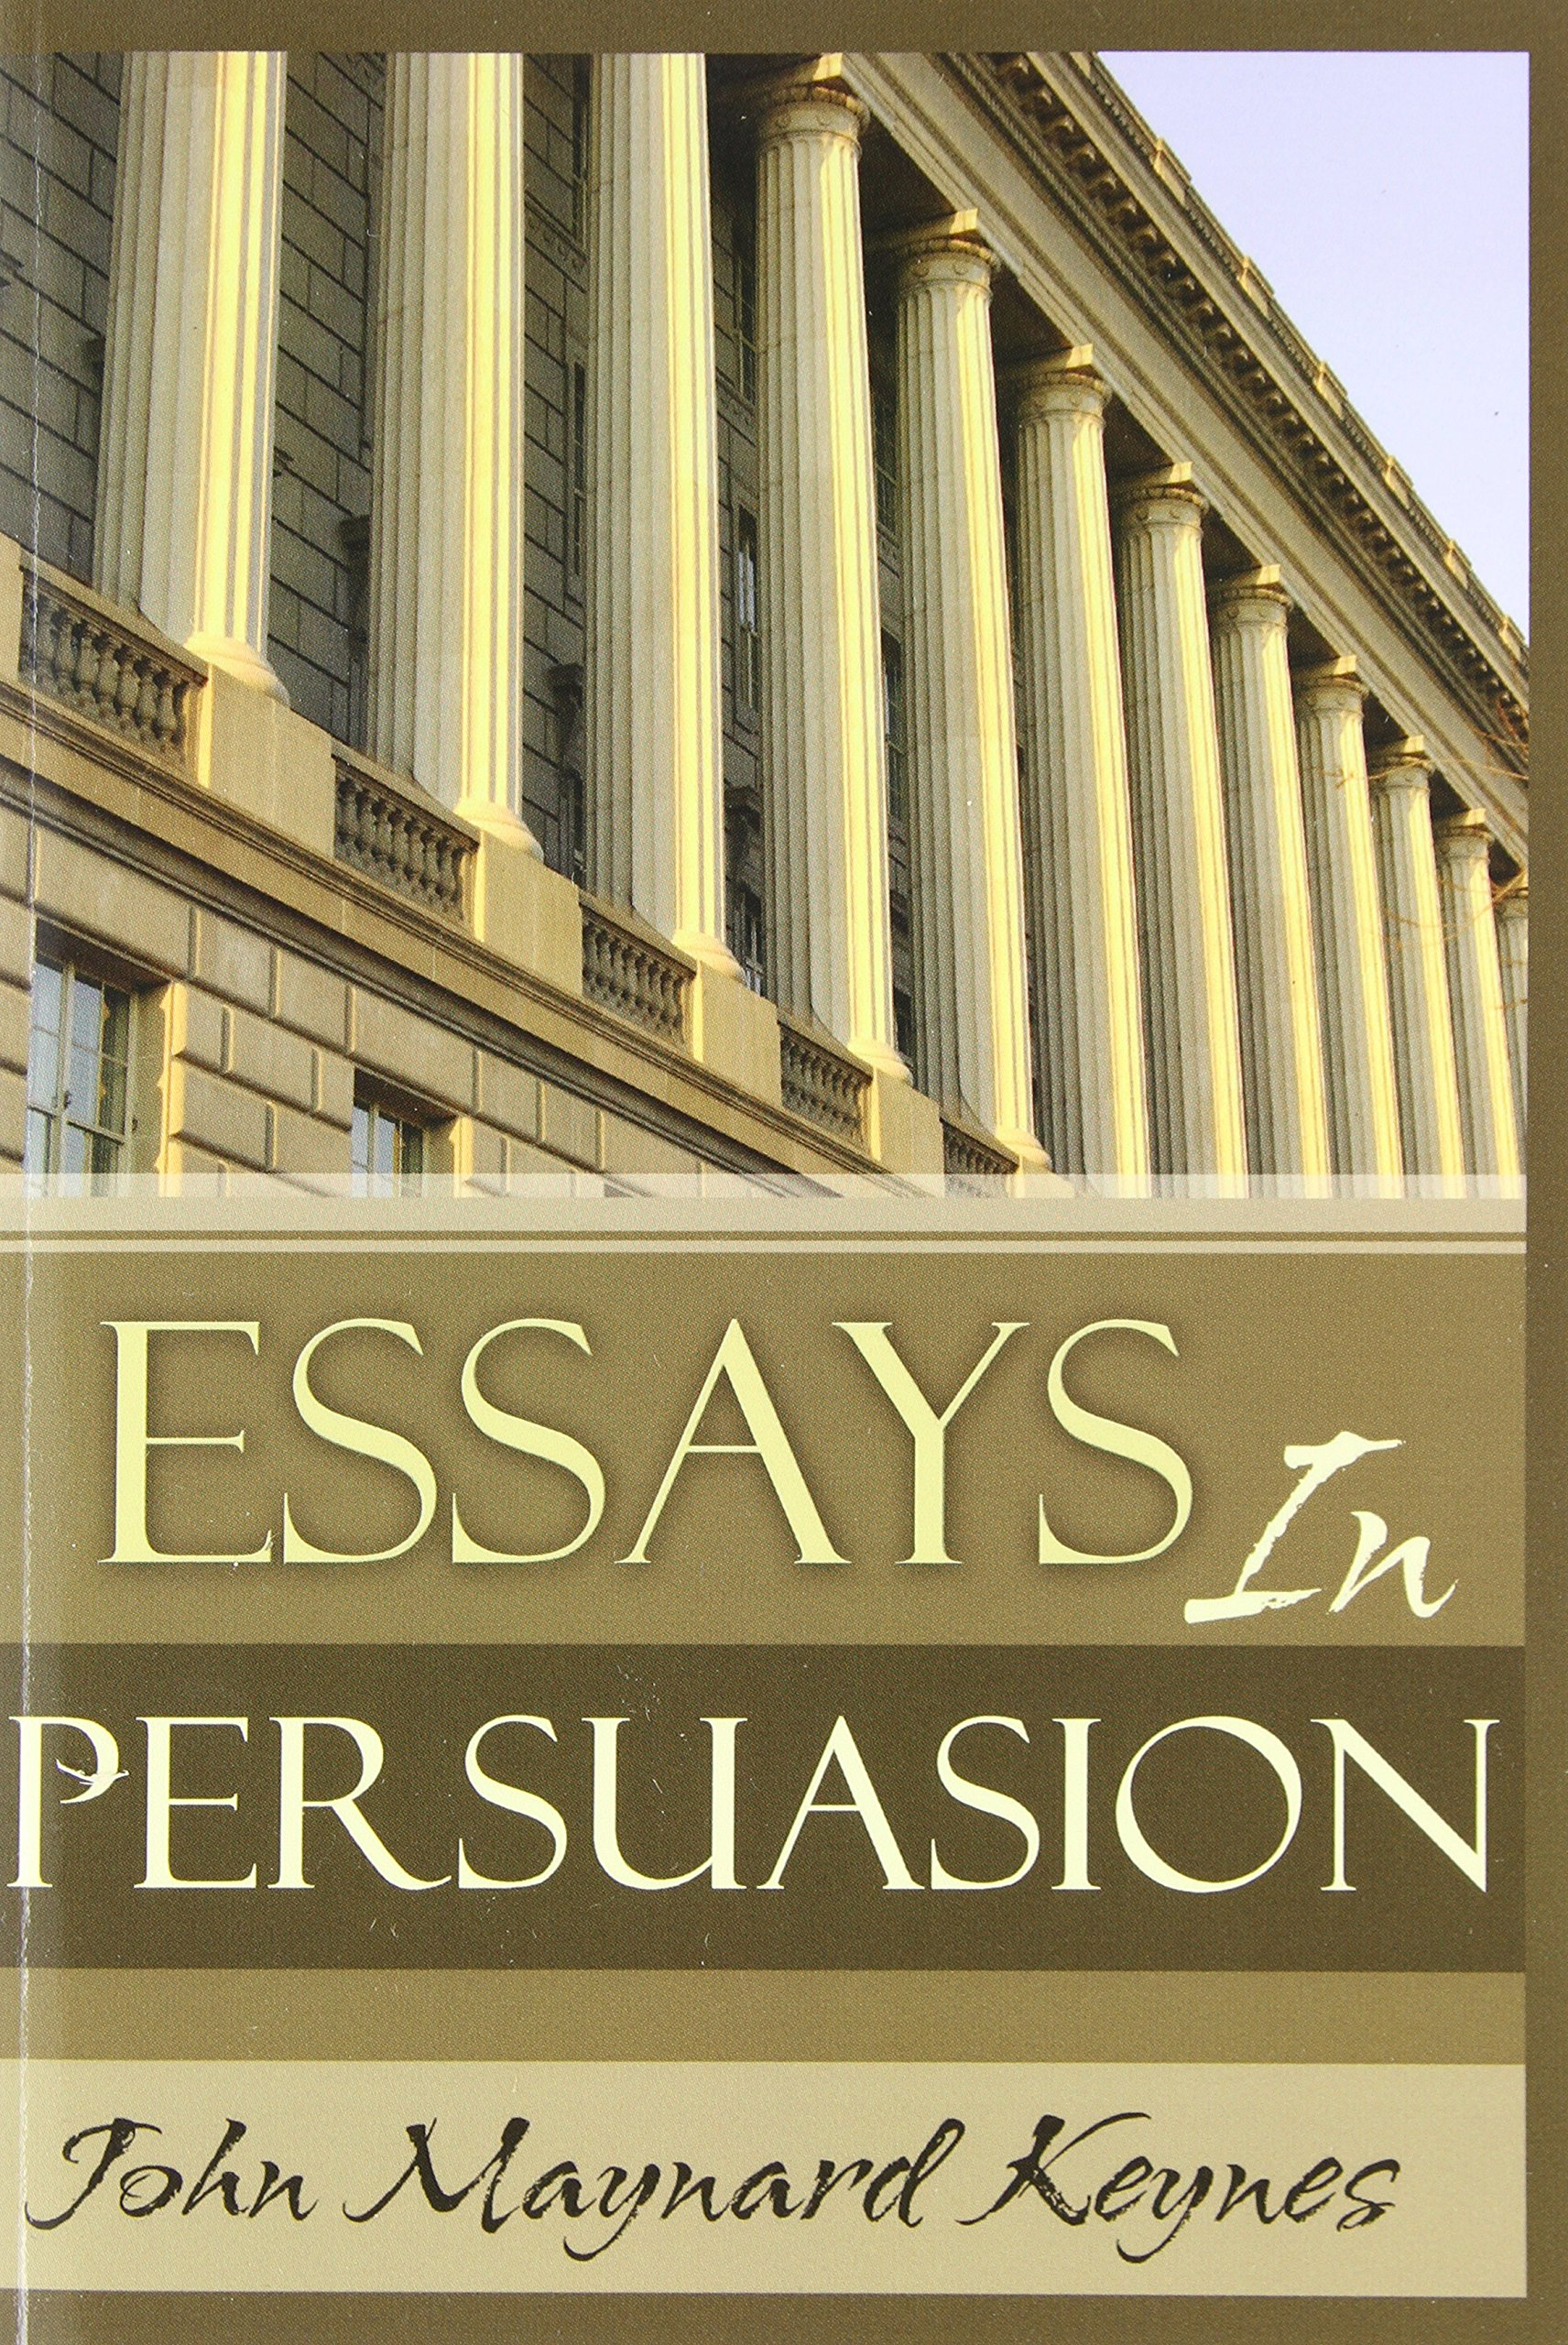 essays in persuasion john nard keynes 9781441492265  essays in persuasion john nard keynes 9781441492265 com books